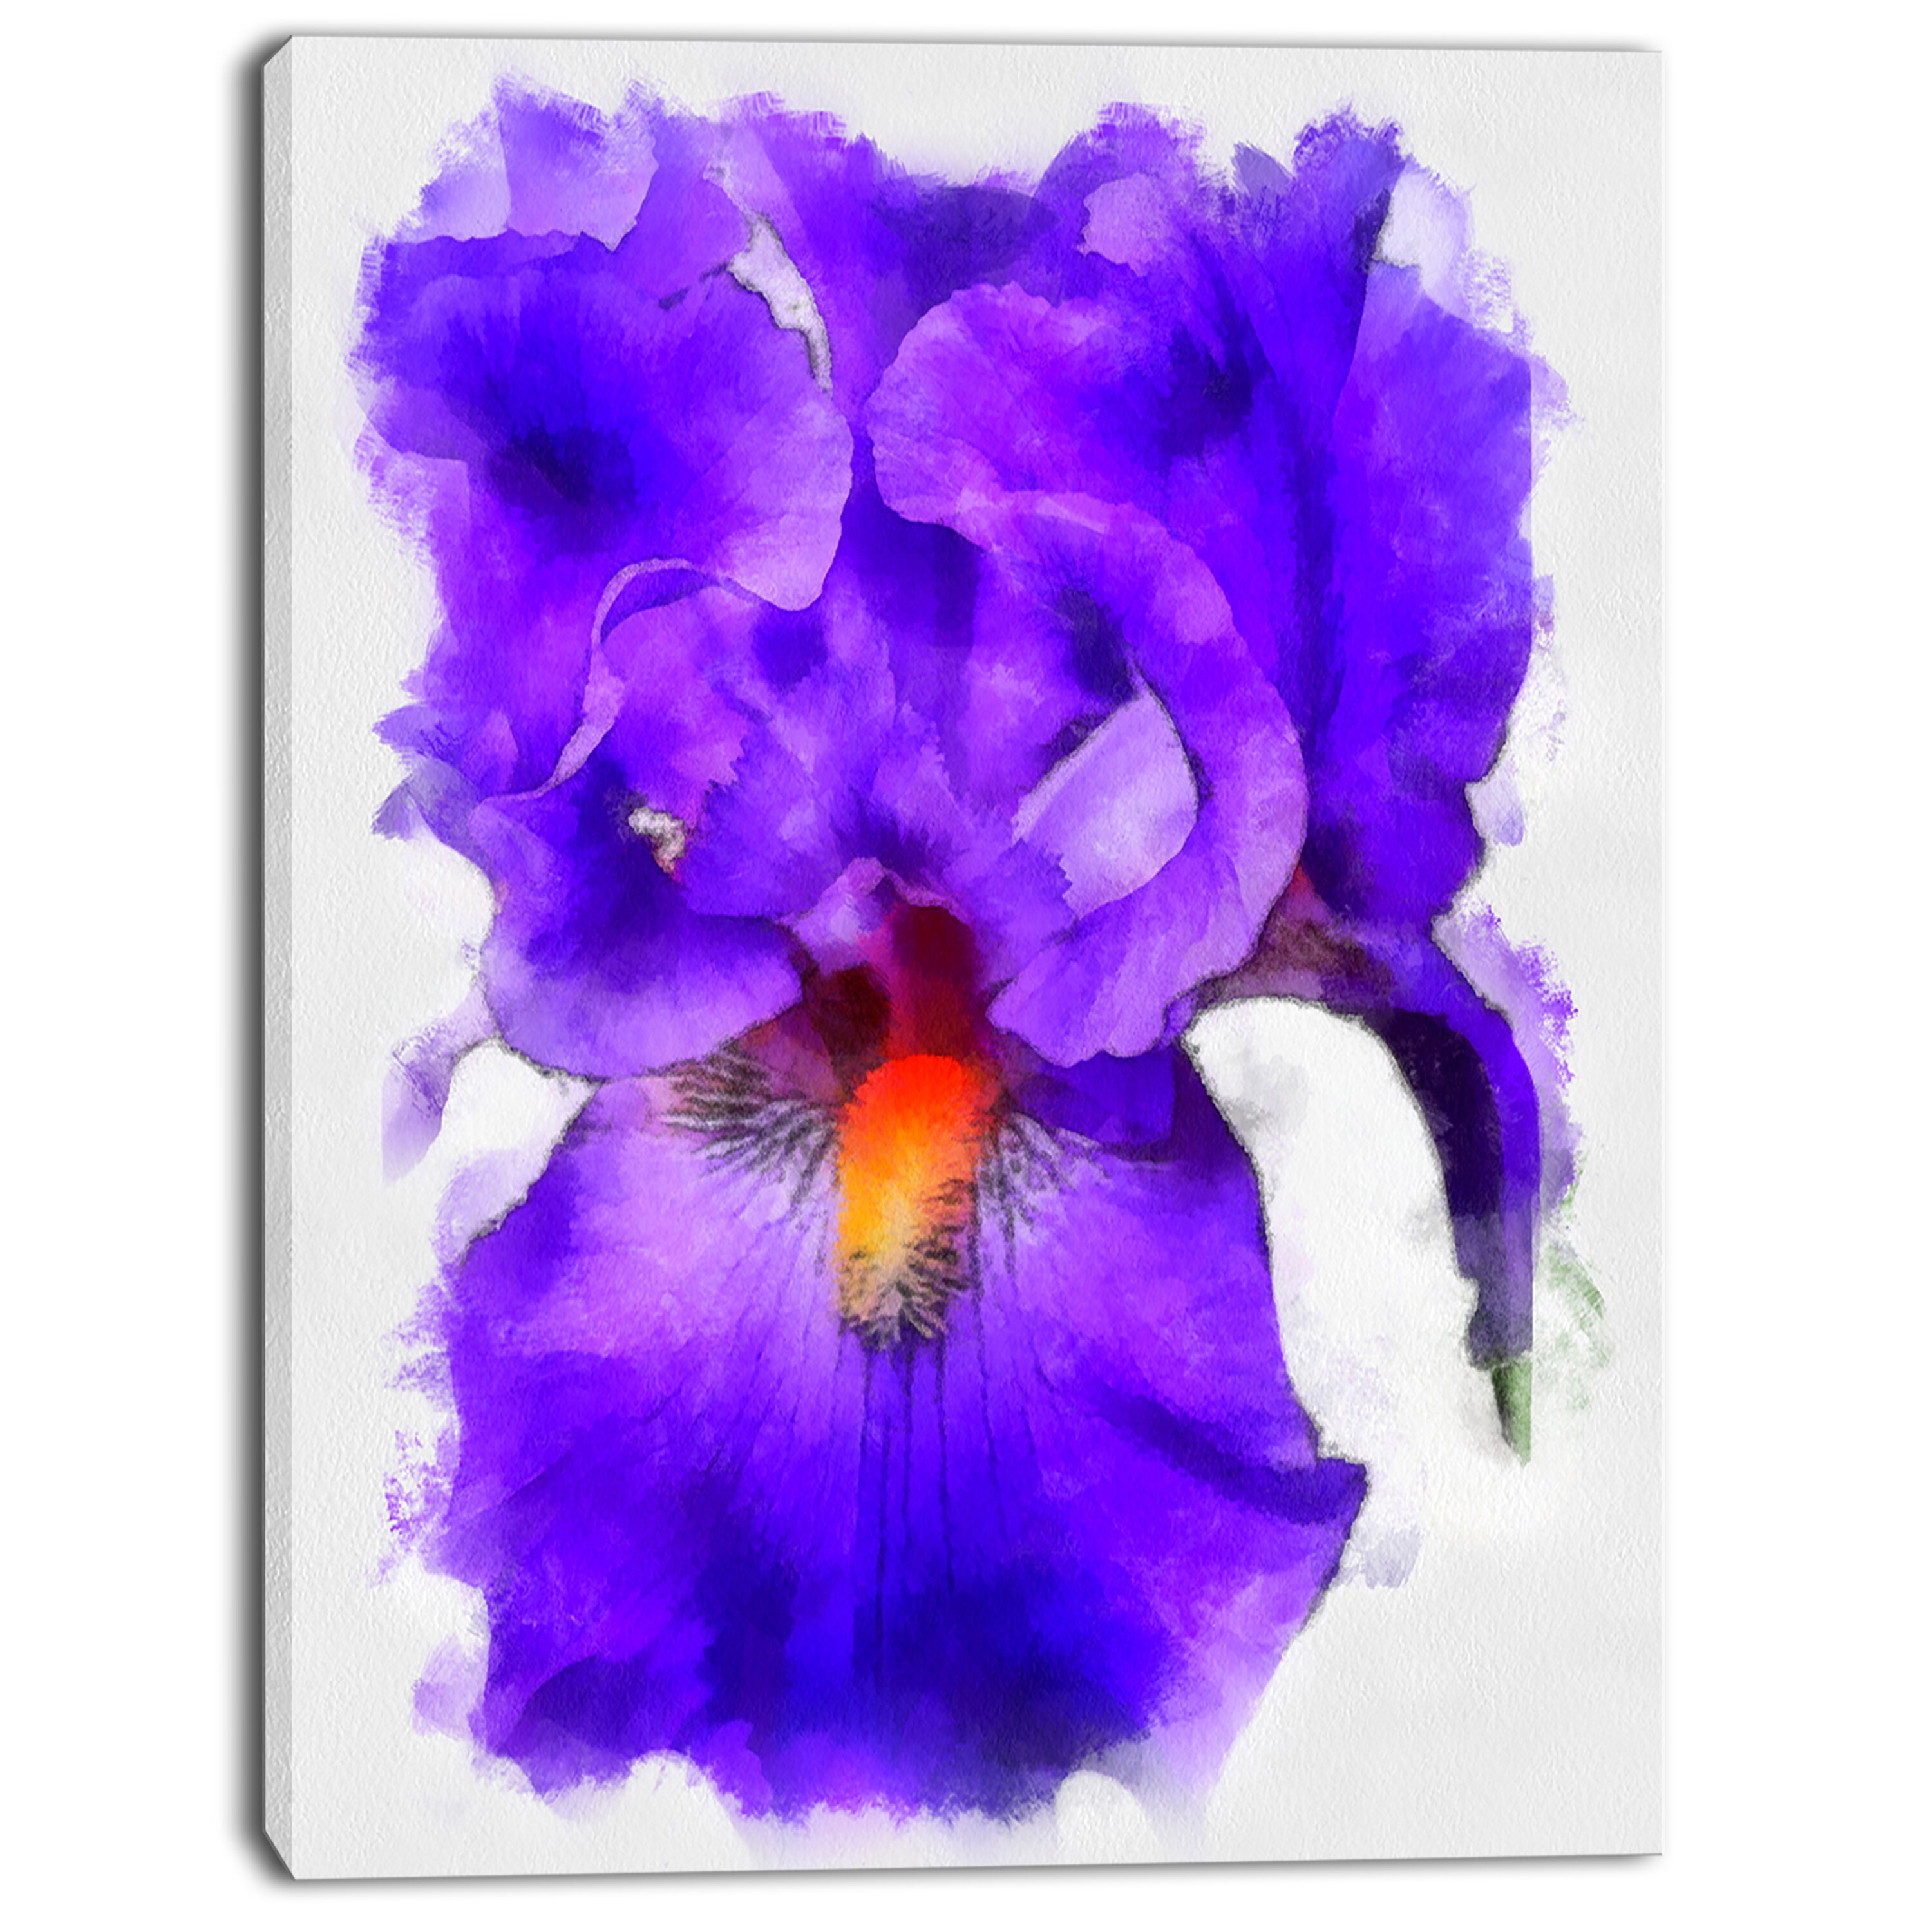 Designart blue iris flower sketch watercolor painting print on designart blue iris flower sketch watercolor painting print on wrapped canvas reviews wayfair izmirmasajfo